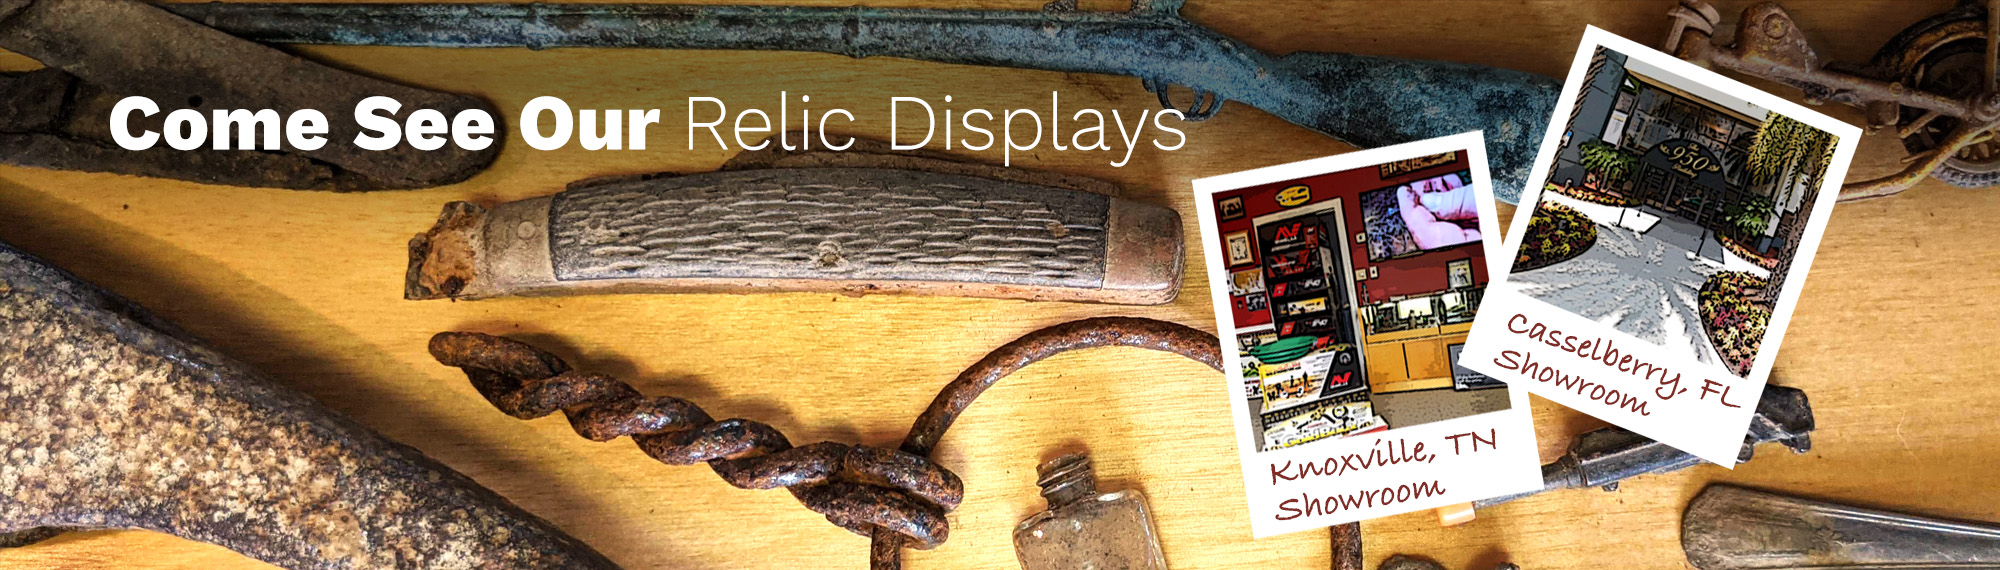 Kellyco Showroom Banner Come Visit Us and See the New Items and Old Relics at our Showrooms in Florida and Tennessee